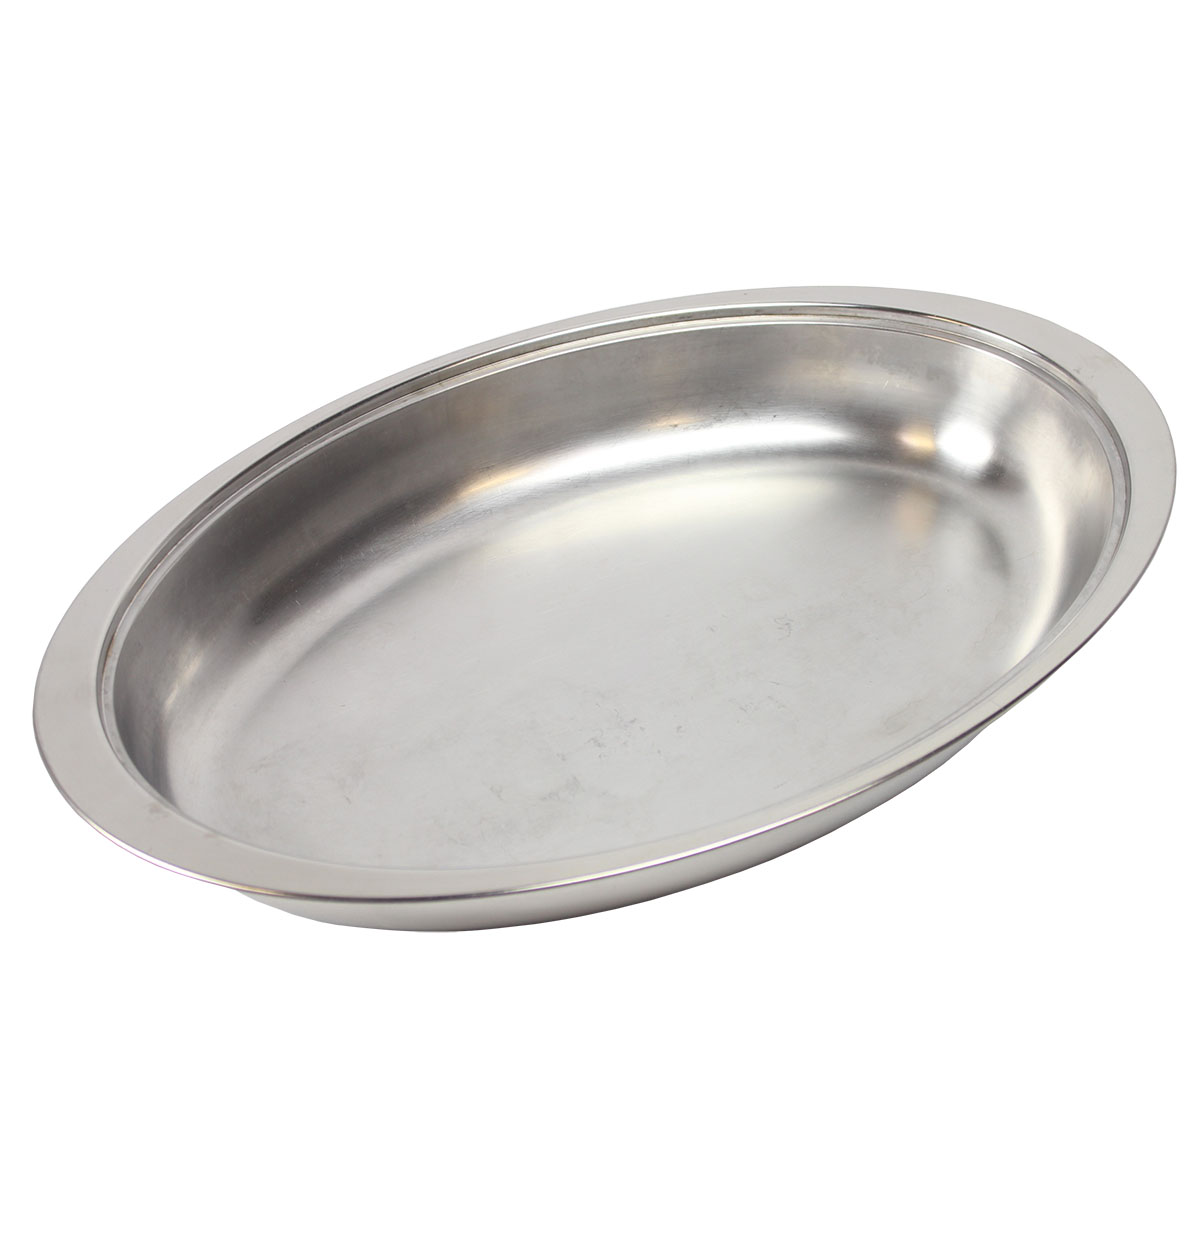 Chafer Pan Oval